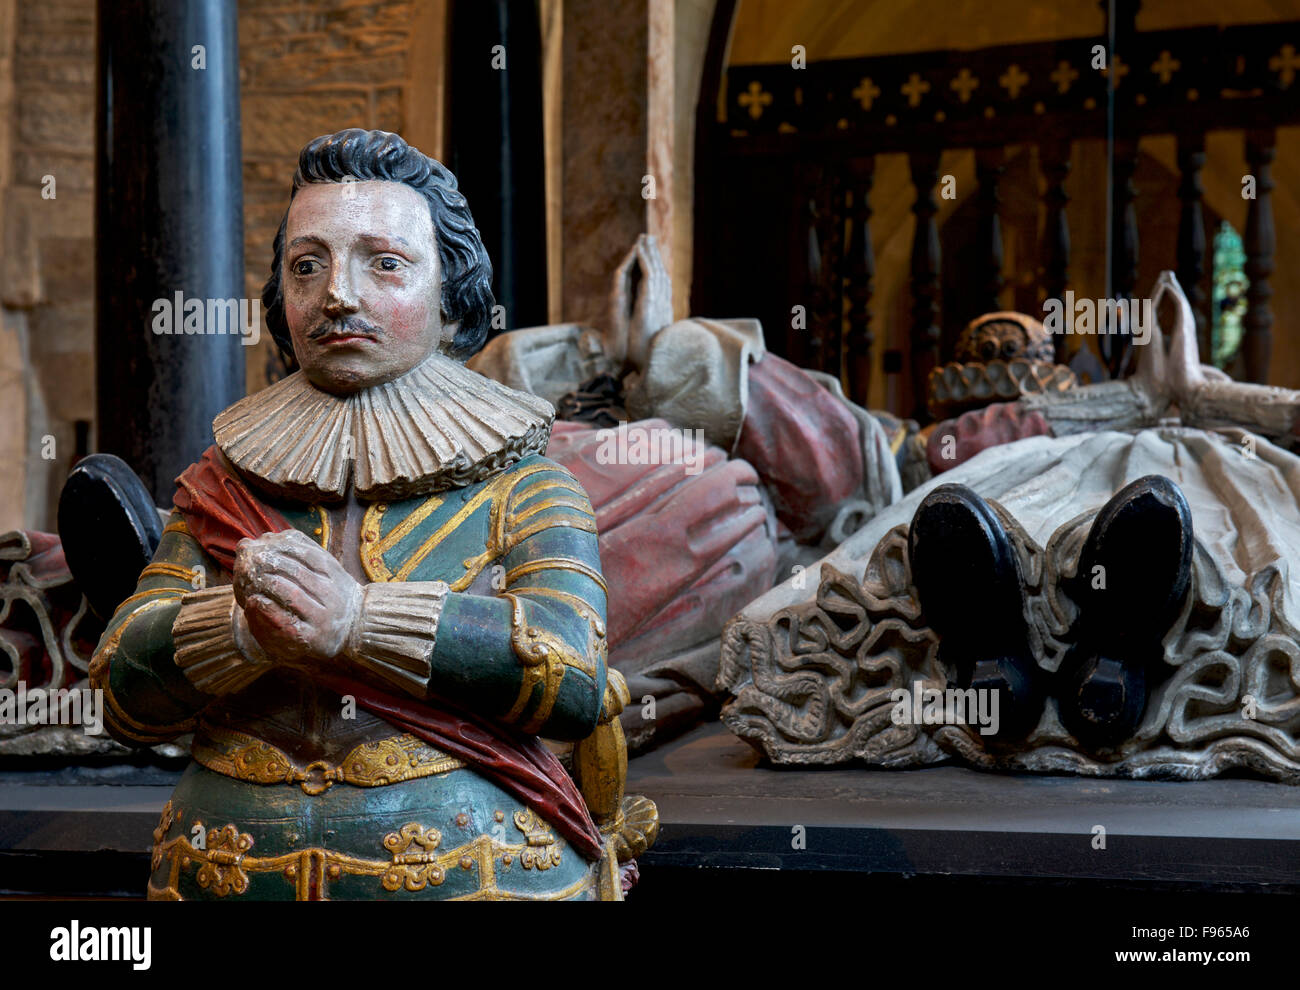 The Tanfield tomb - and weeper - in the Church of John the Baptist, Burford, Oxfordshire, England UK - Stock Image